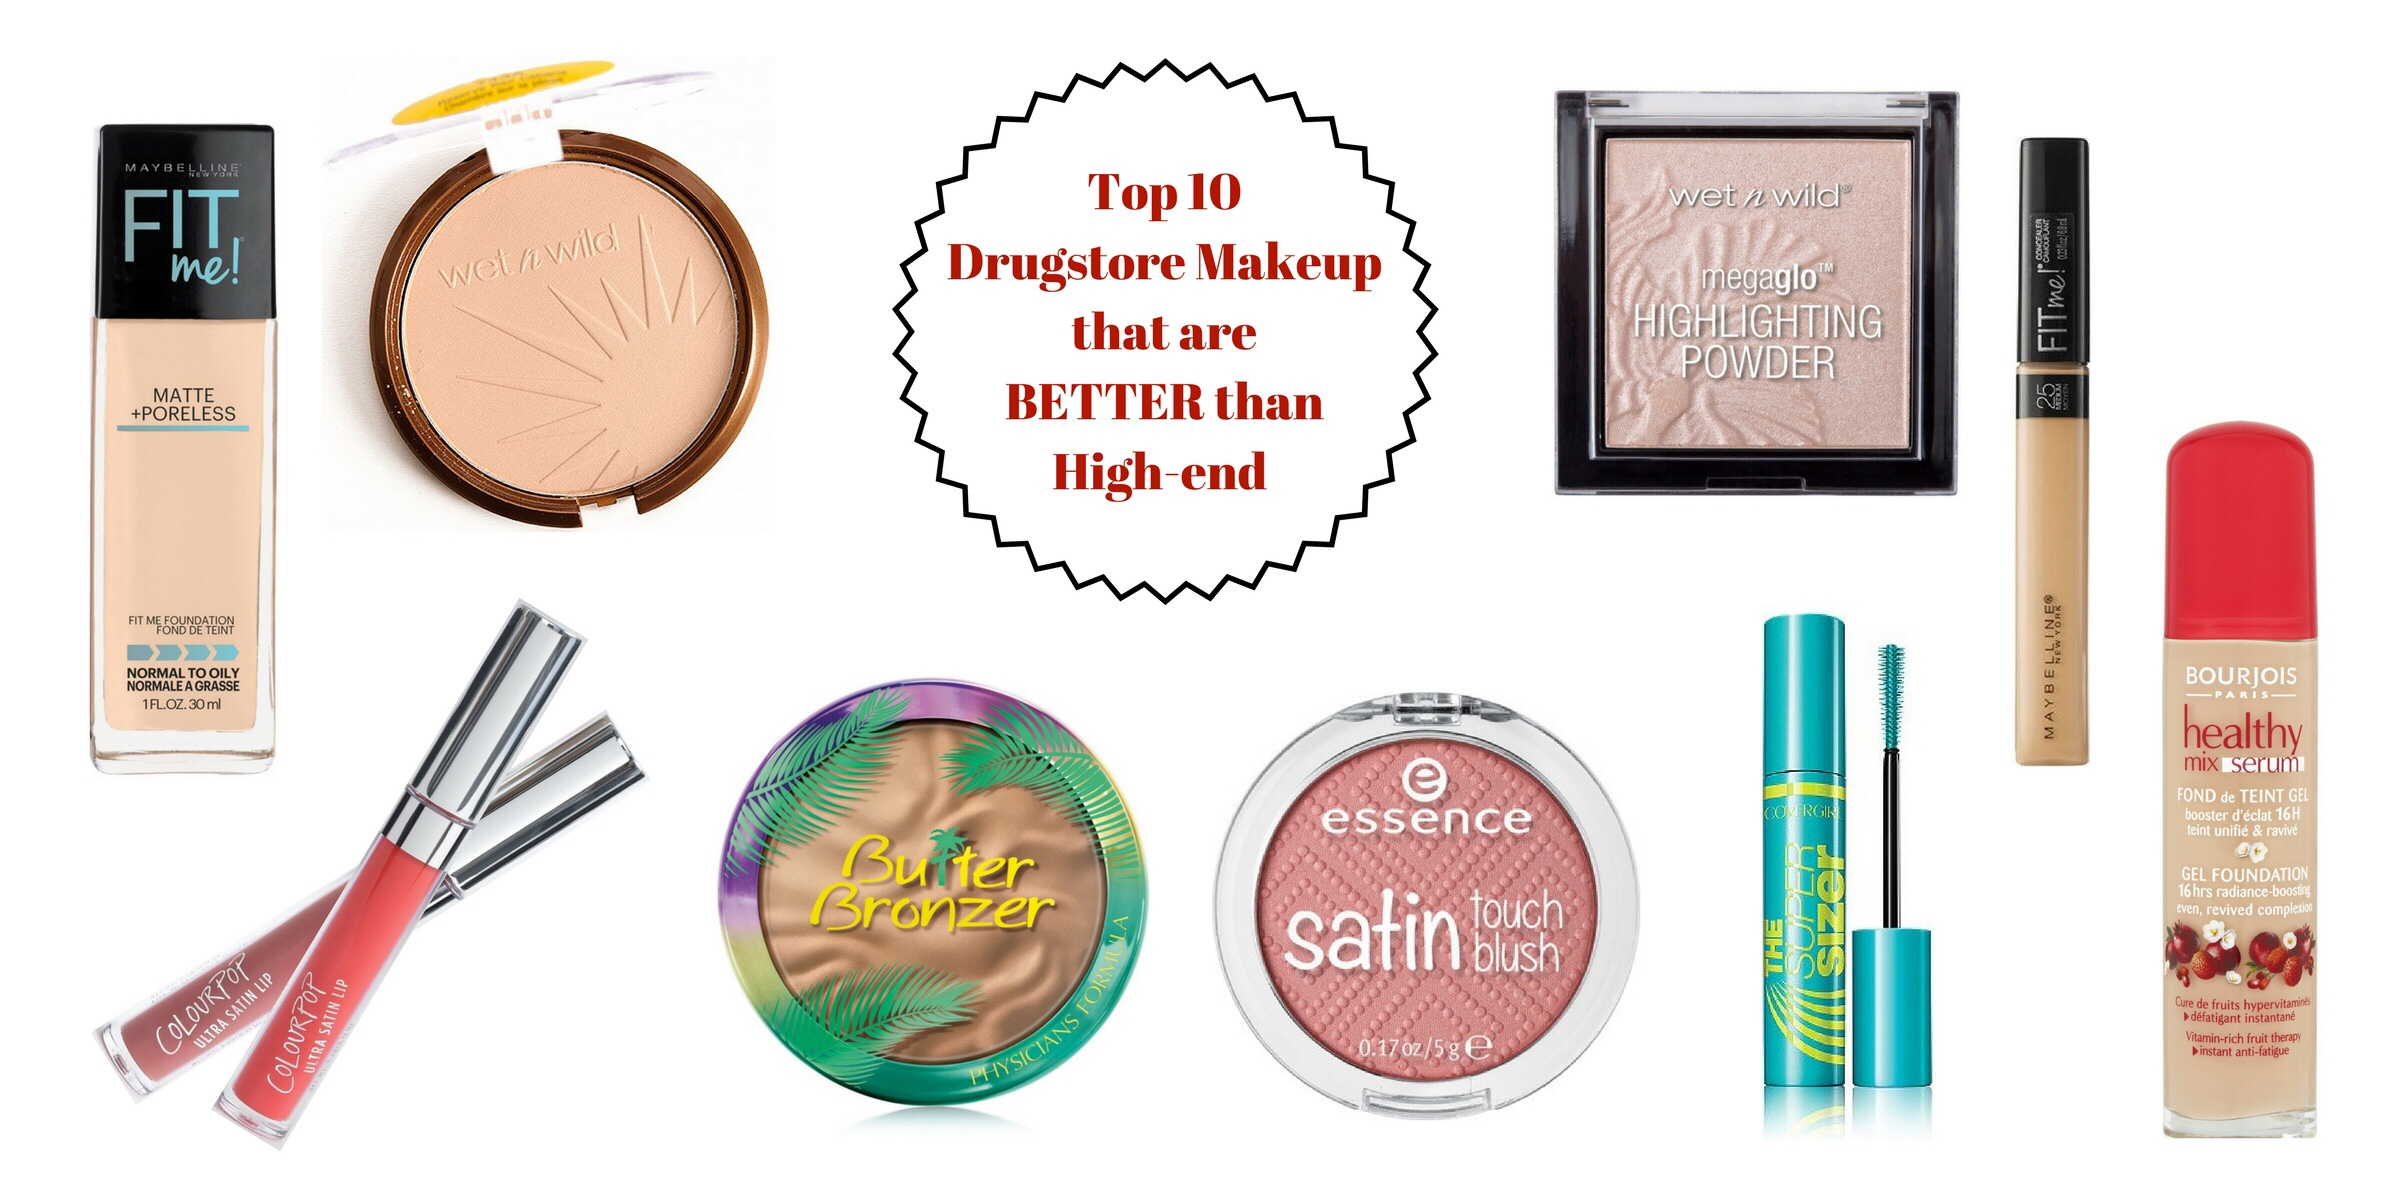 TOP 10 DRUGSTORE MAKEUP PRODUCTS THAT ARE BETTER THAN HIGH-END | Swatch + Review